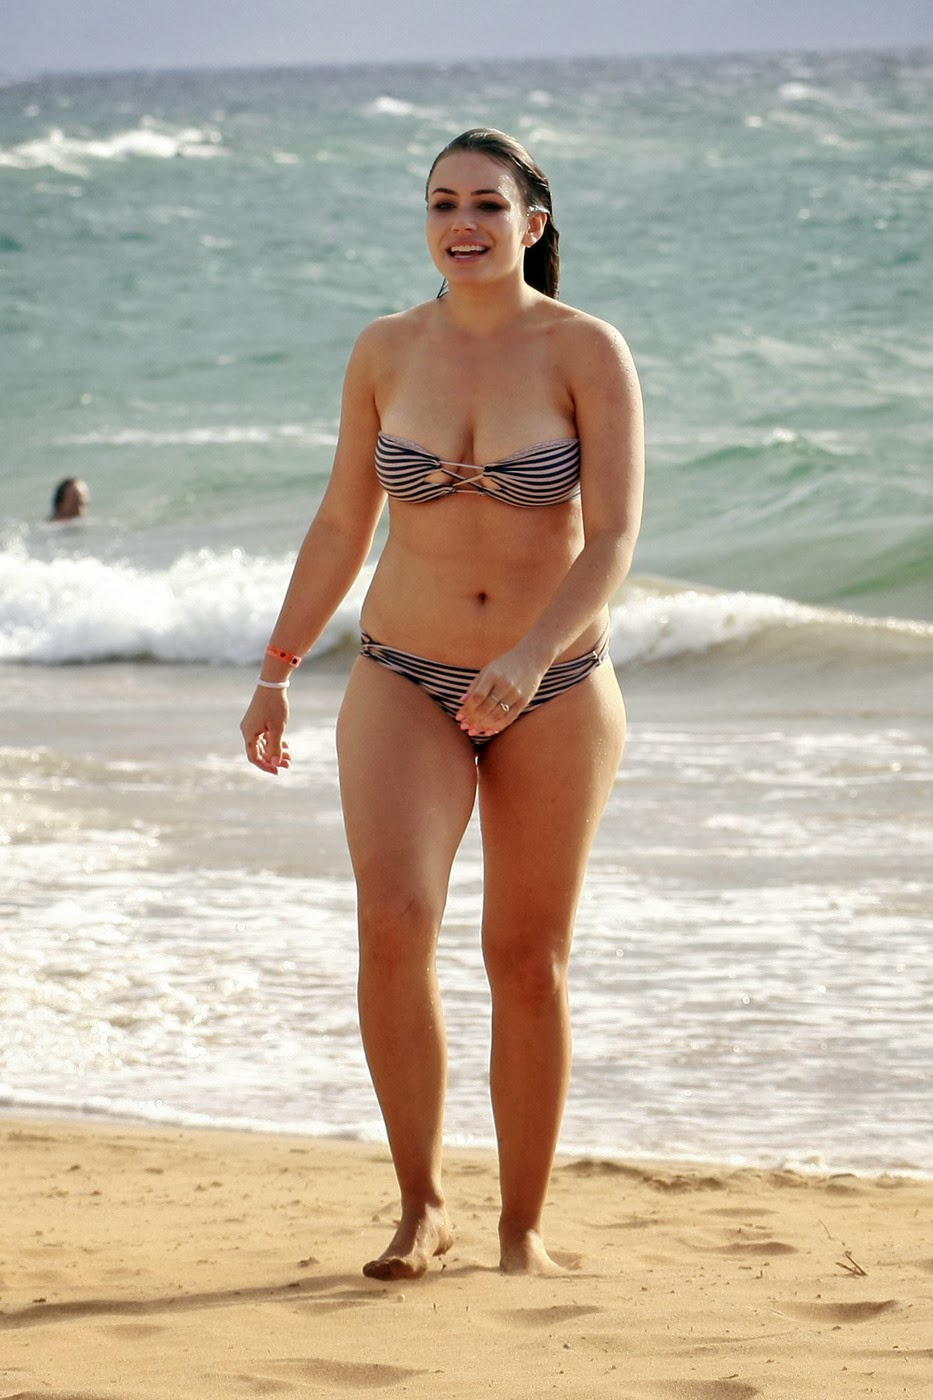 Bikini pictures of hollywood